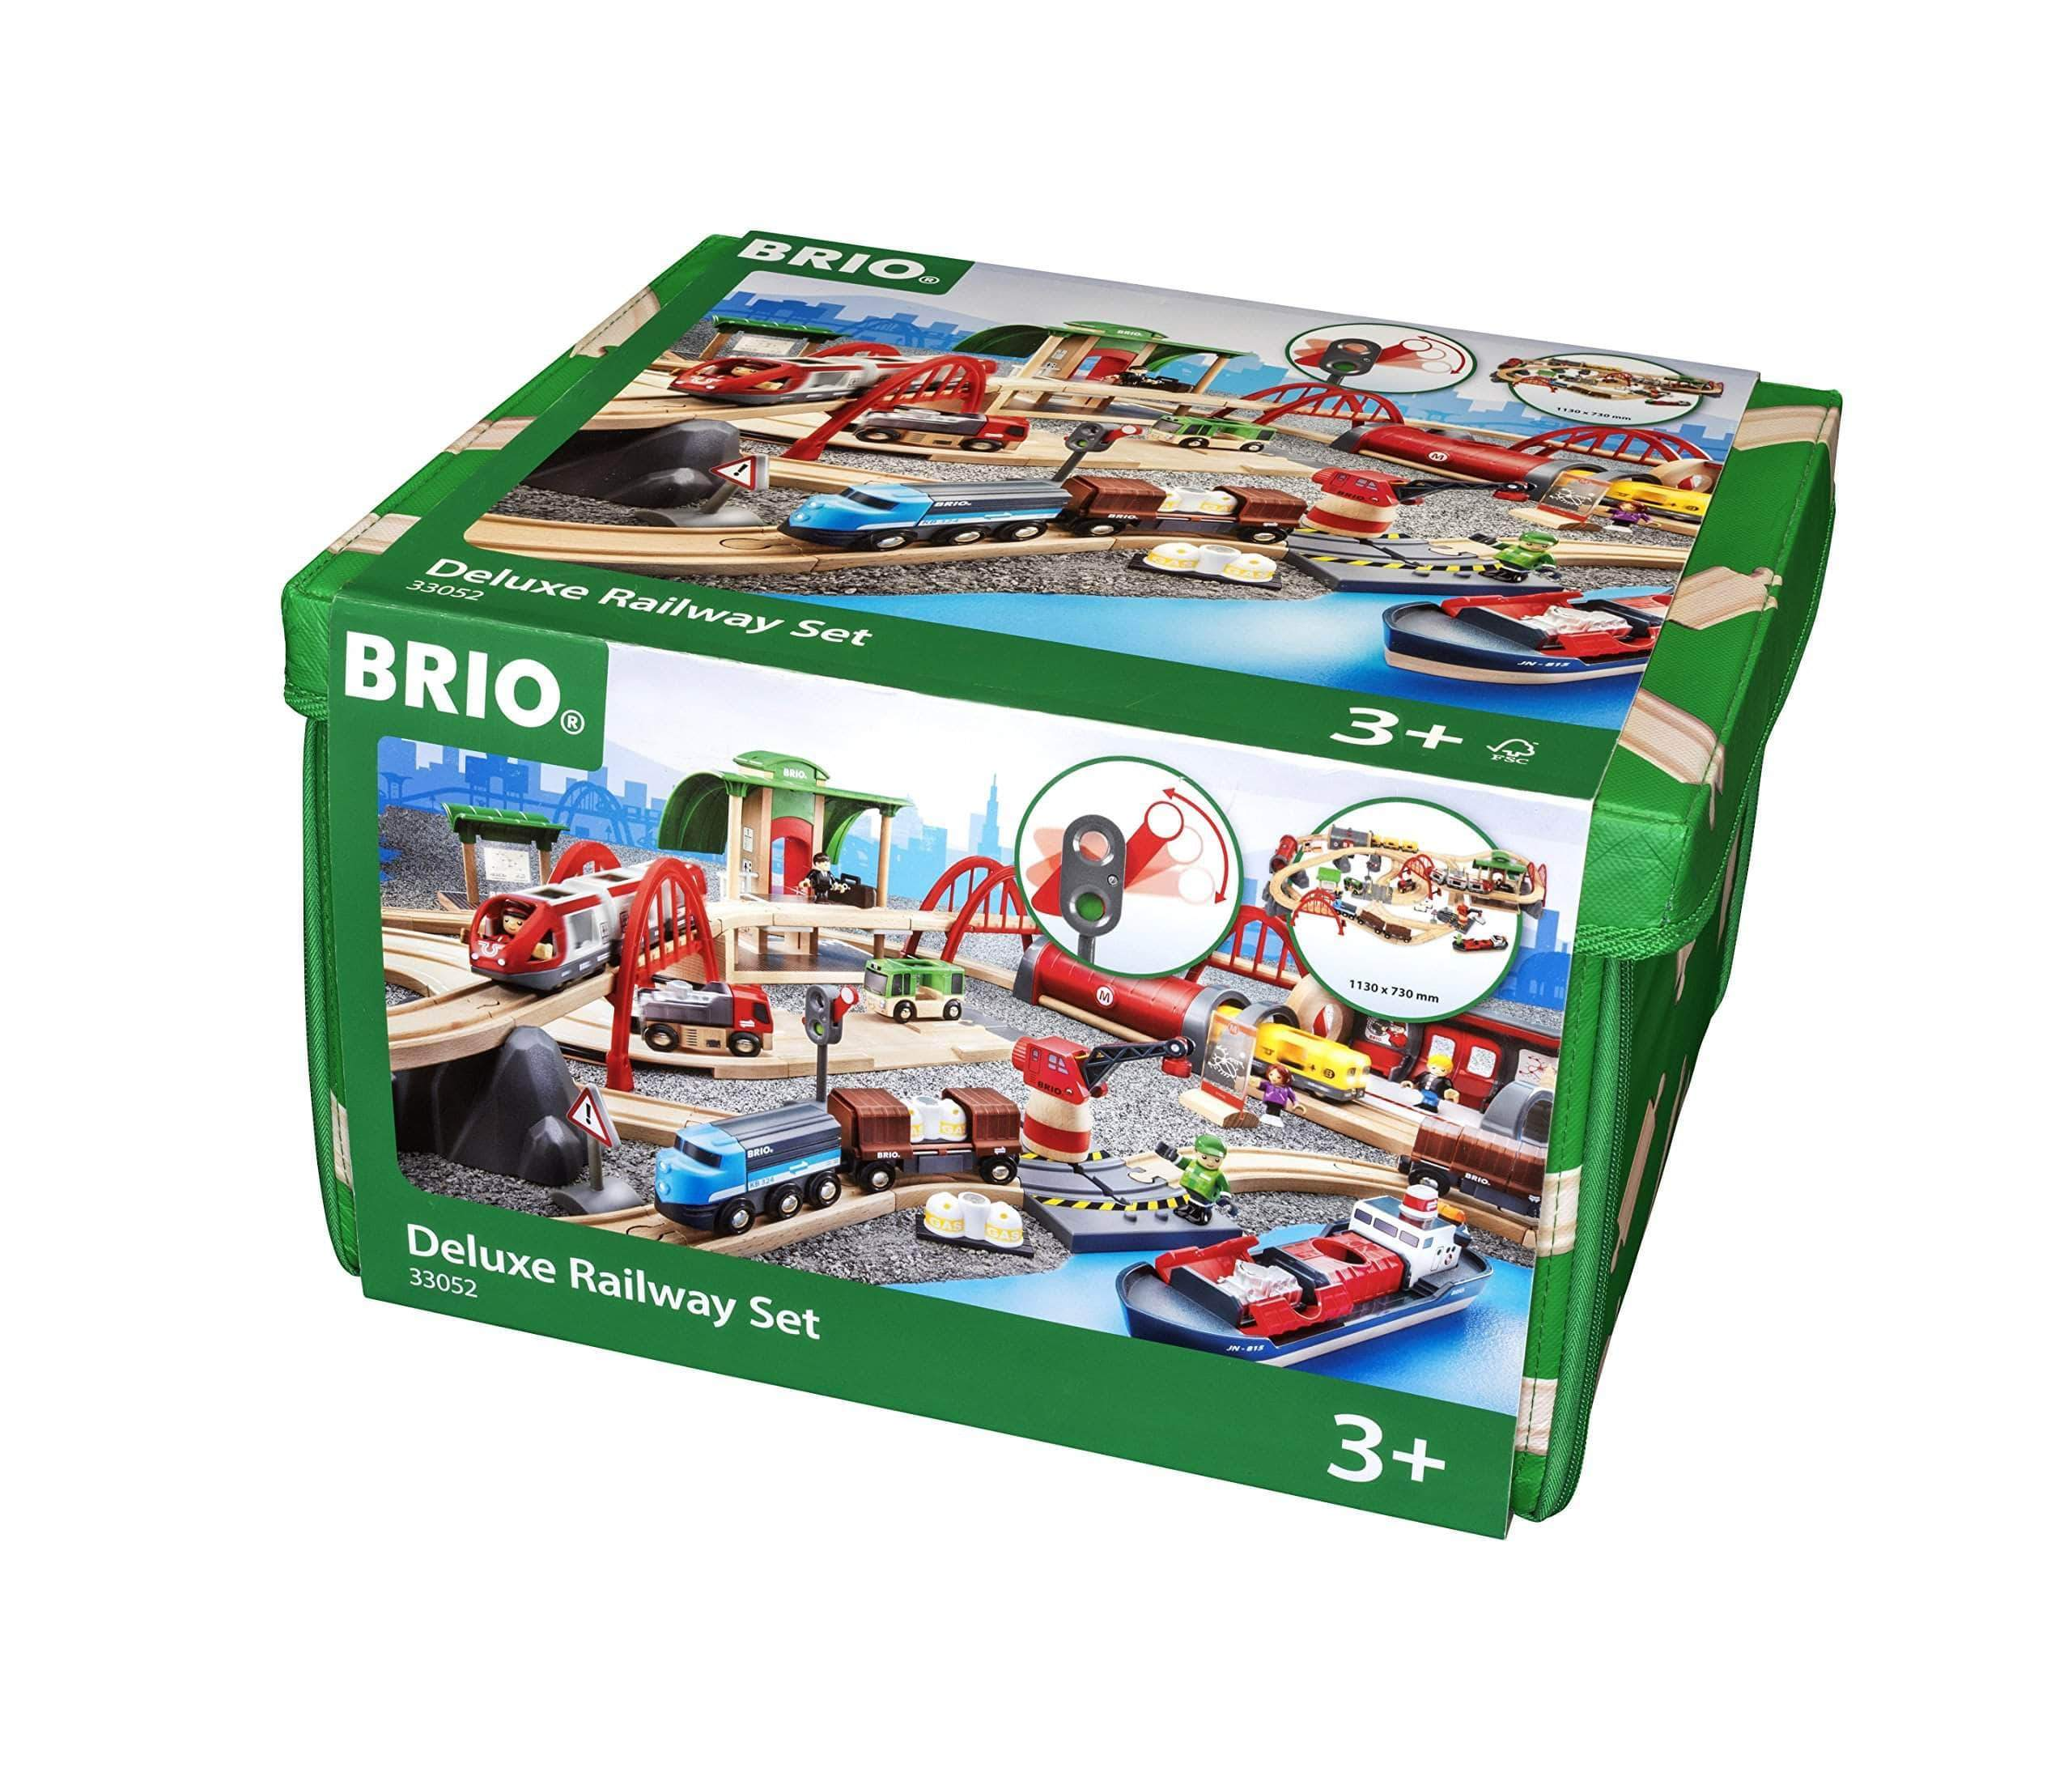 Amazon Brio 33052 Deluxe Railway Set - Set circuito de tren